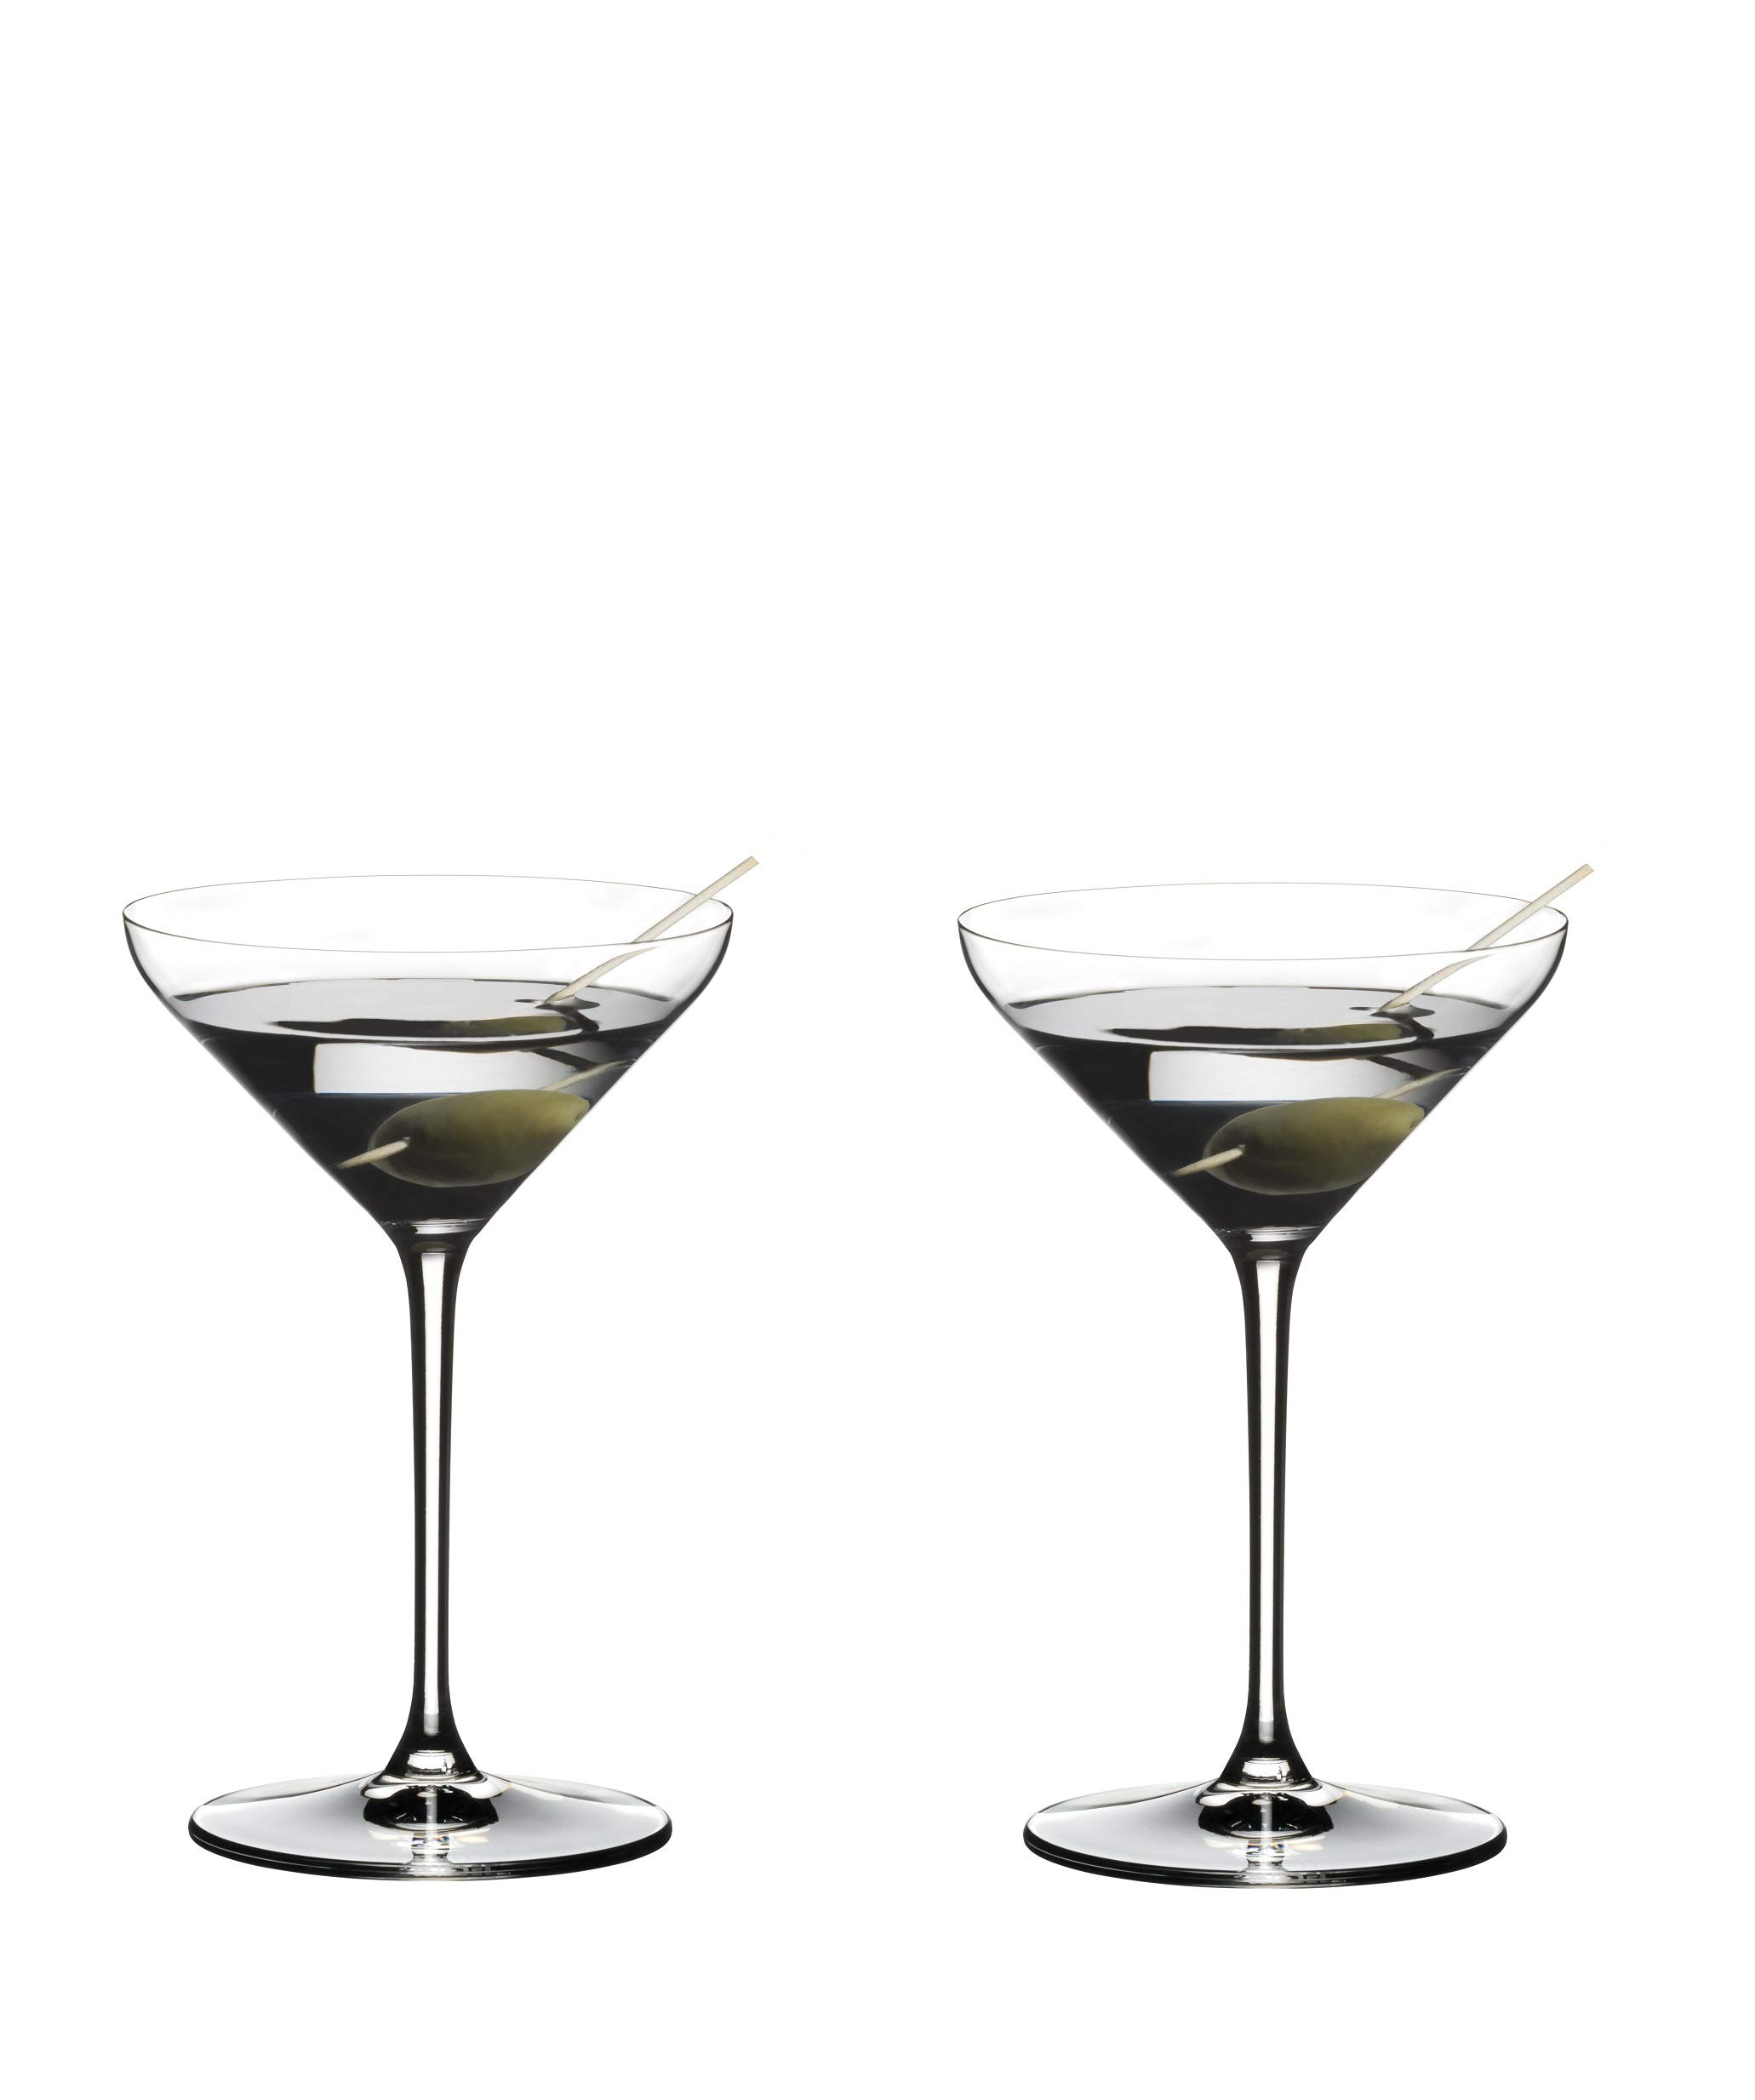 Riedel 4441/17 Extreme Martini Glass, Set of 2, Clear by Riedel